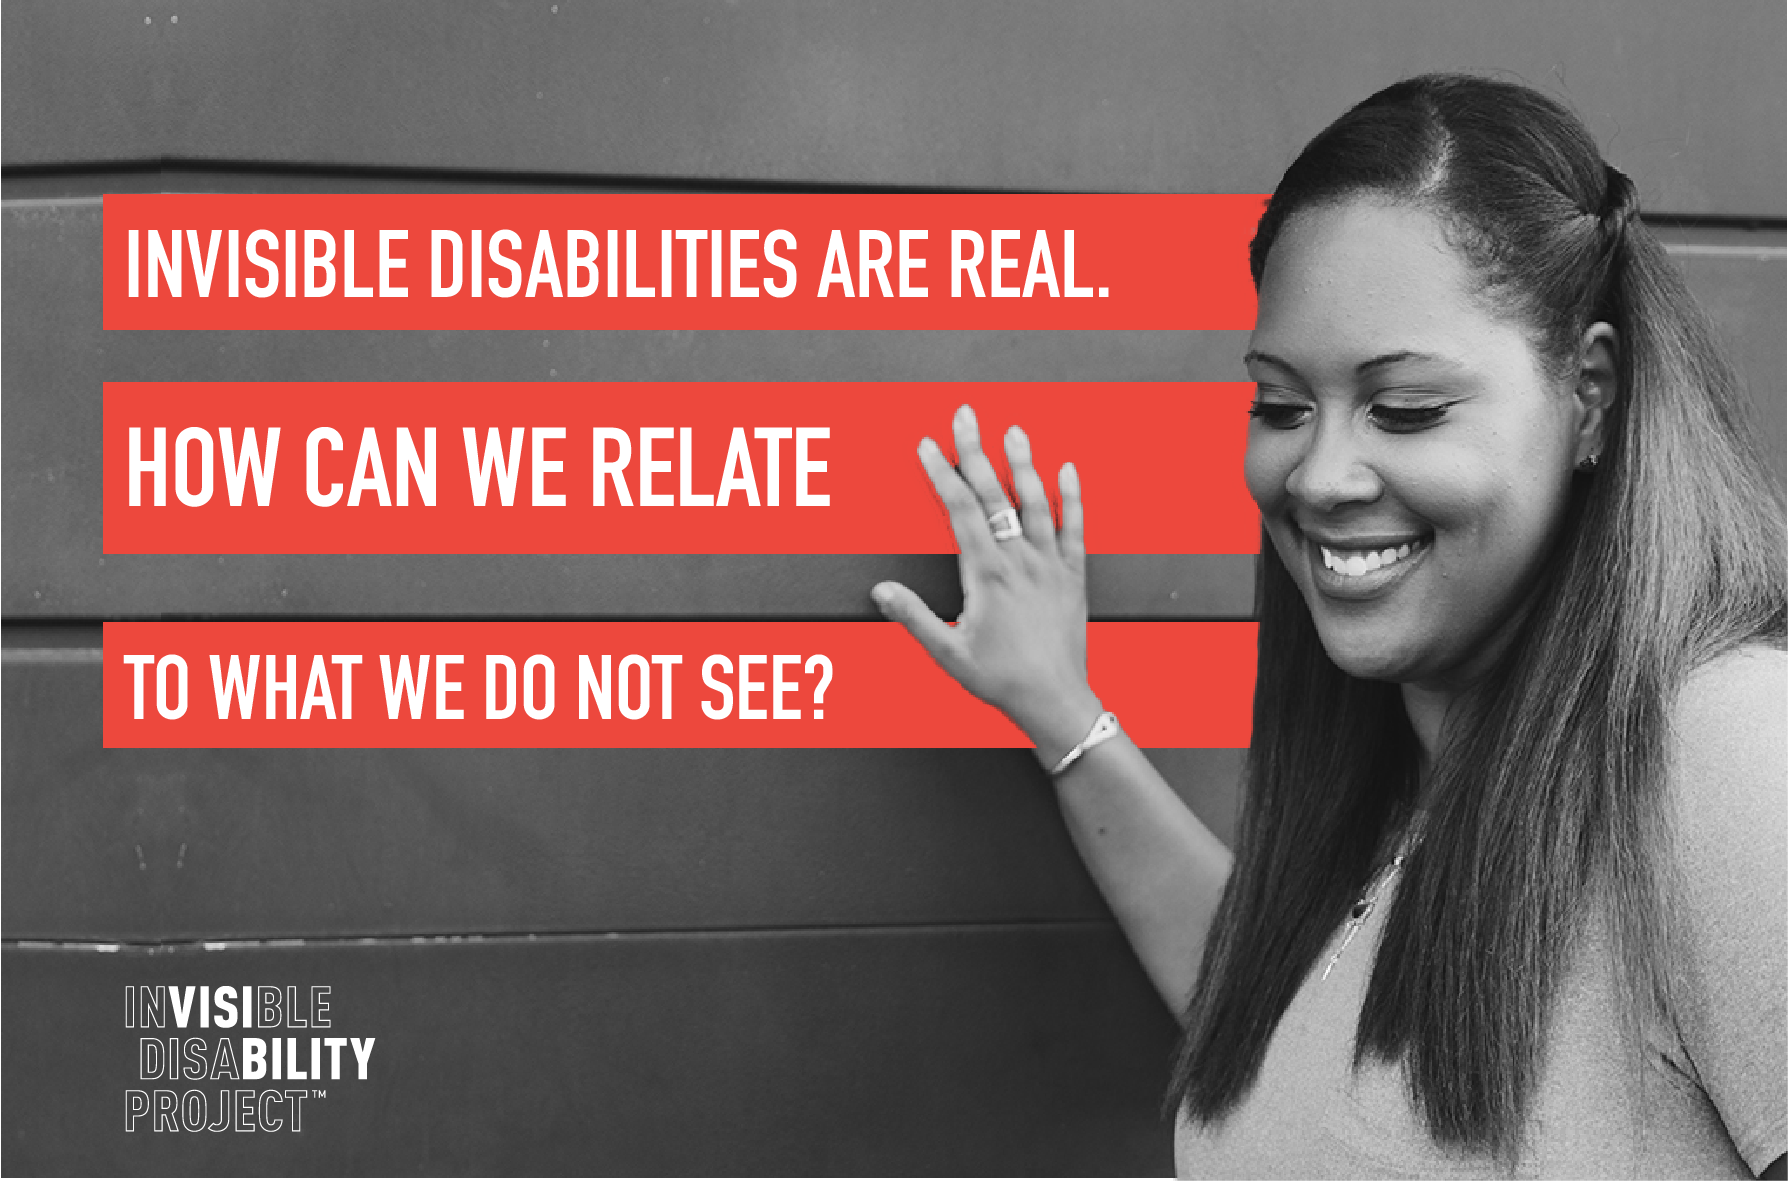 Invisible Disabilities are real. How can we relate to what we do not see?